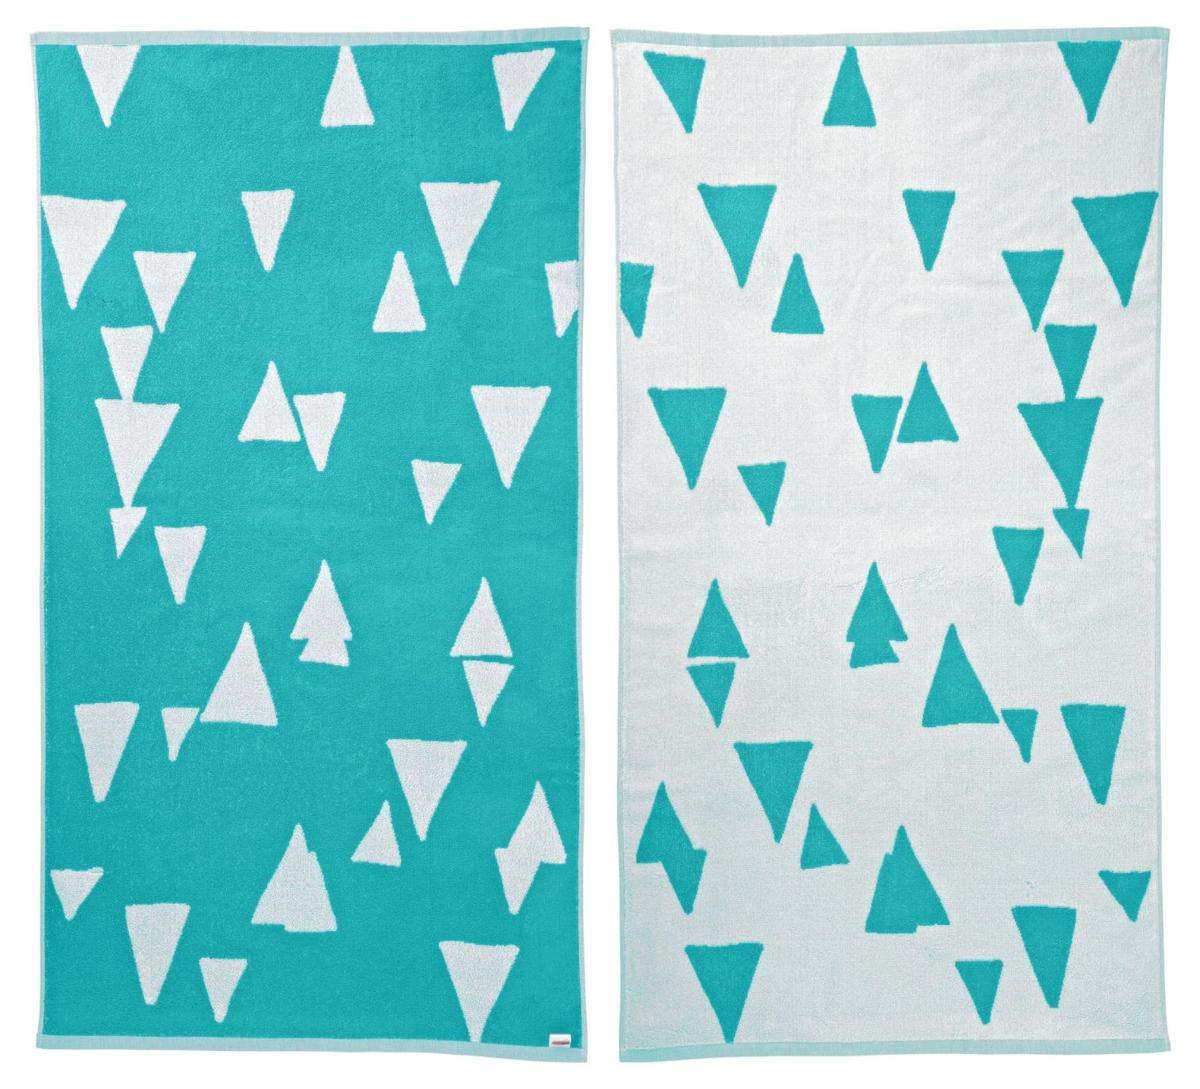 Big, colorful beach towels offer summer snap